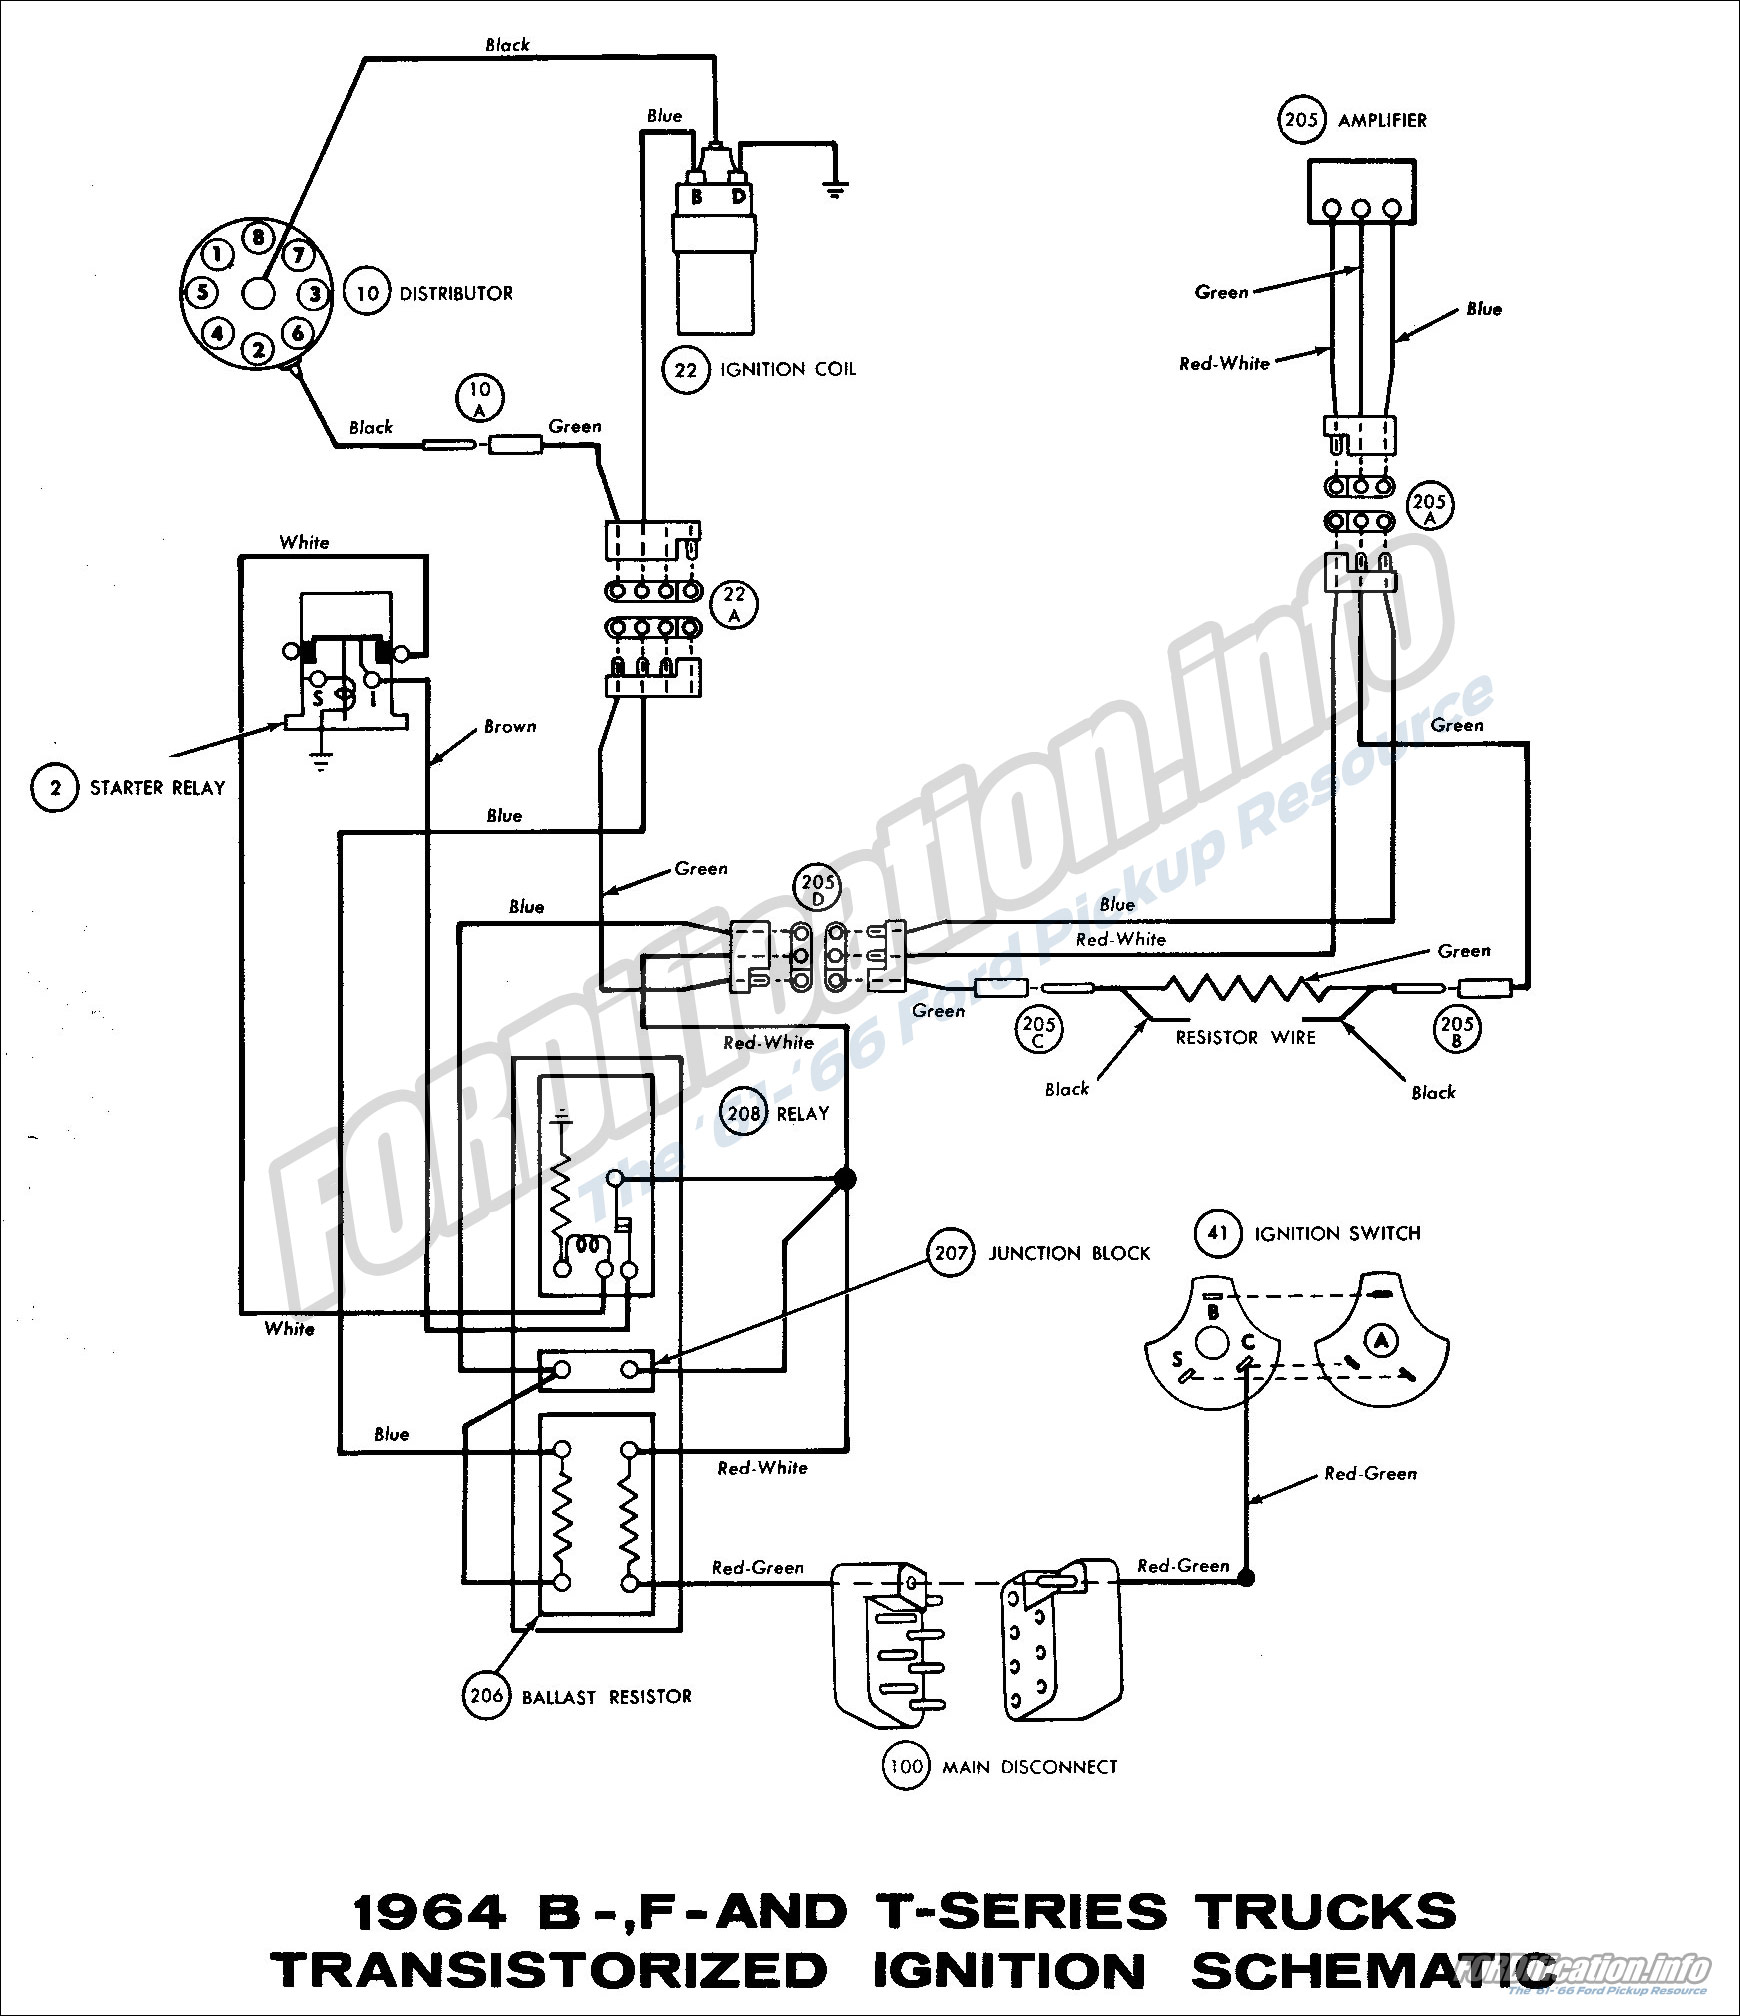 1966 ford truck ignition wiring diagram wiring library Mercruiser Coil Wiring Diagram 1964 b , f and t series trucks transistorized ignition schematic